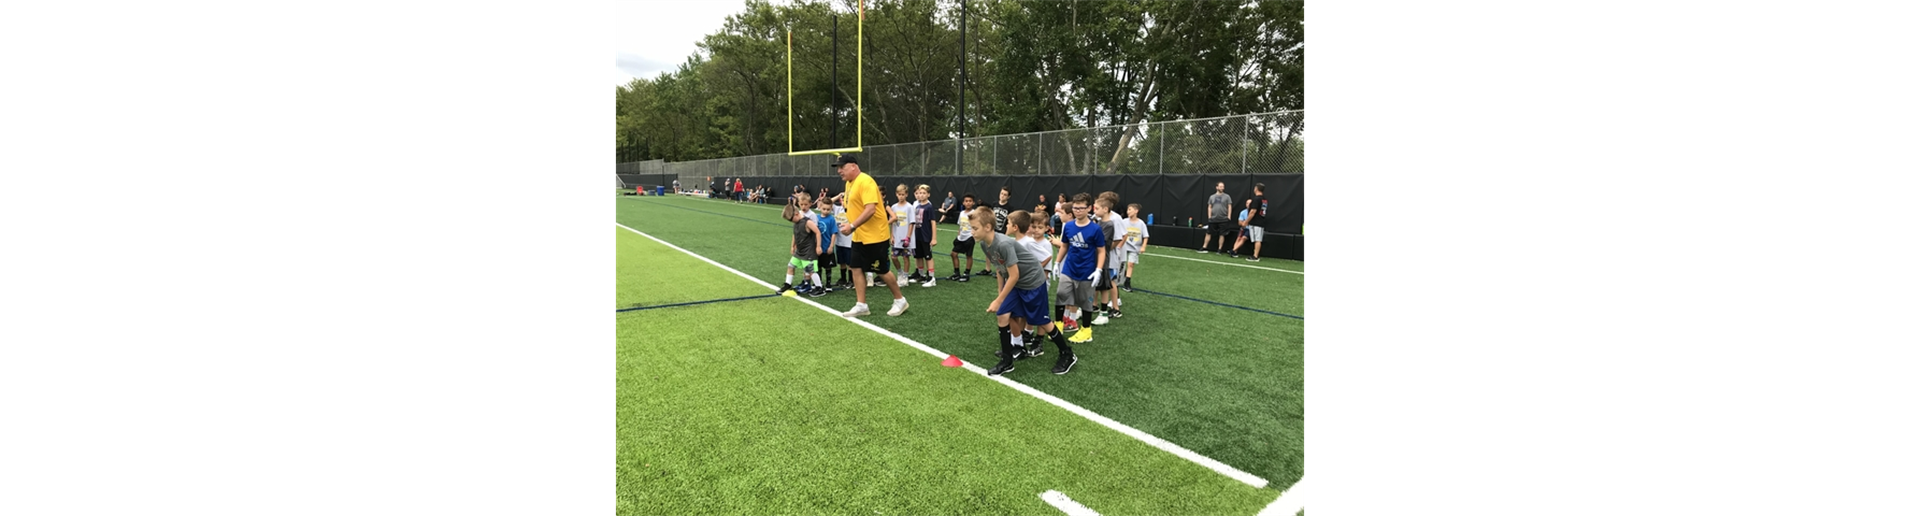 LV 2019 Youth Football Summer Camp - SUCCESS